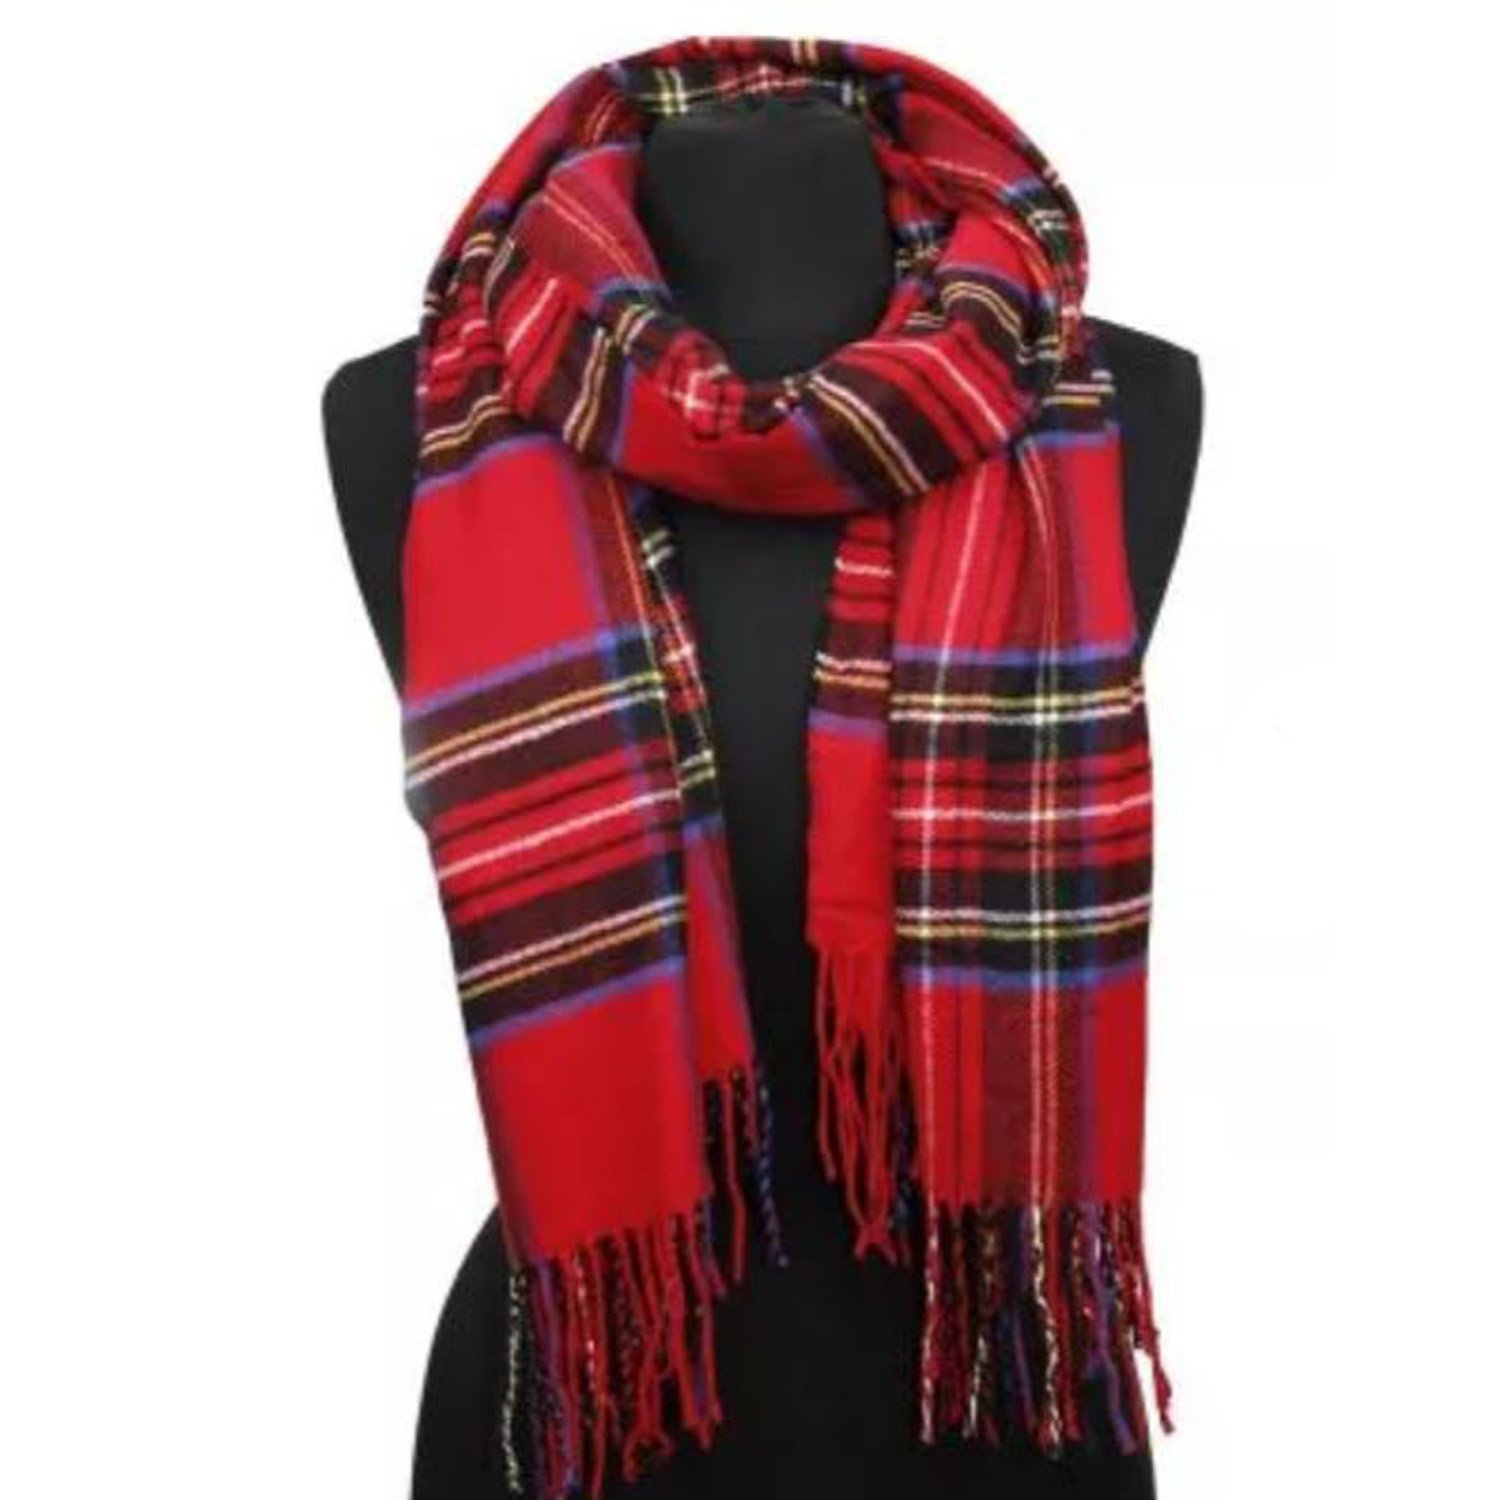 APPARELISM Women's Winter Scottish Clan Plaid Oversized Cashmere Feel Blanket Scarf Wrap Shawl.(Plaid Red) by APPARELISM (Image #1)